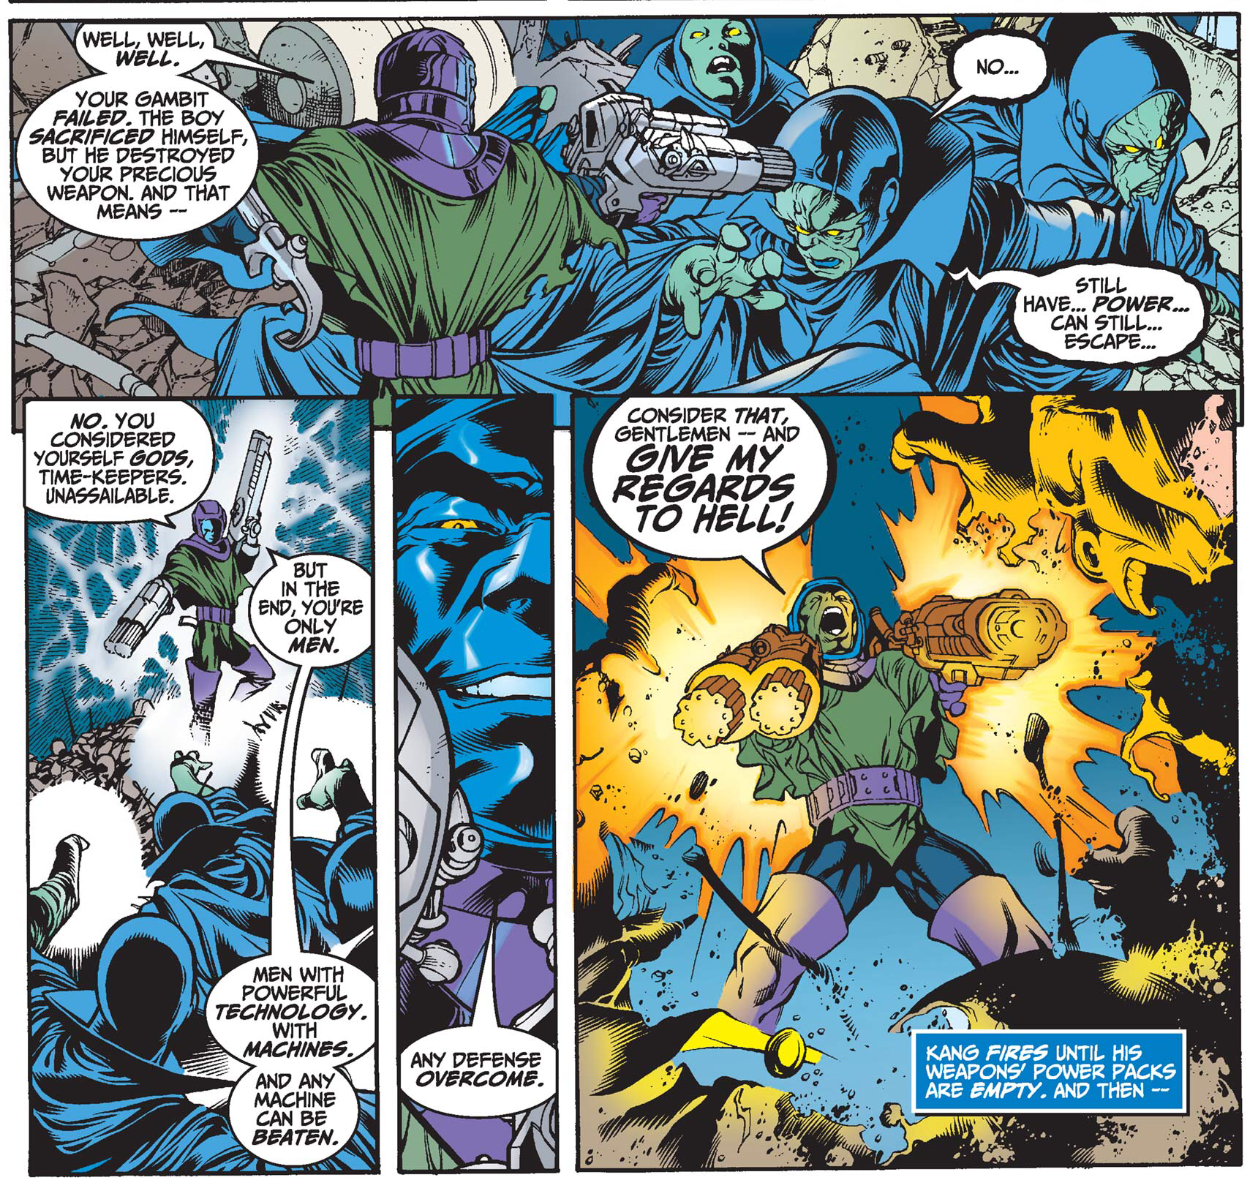 Kang the Conqueror in Avengers Forever